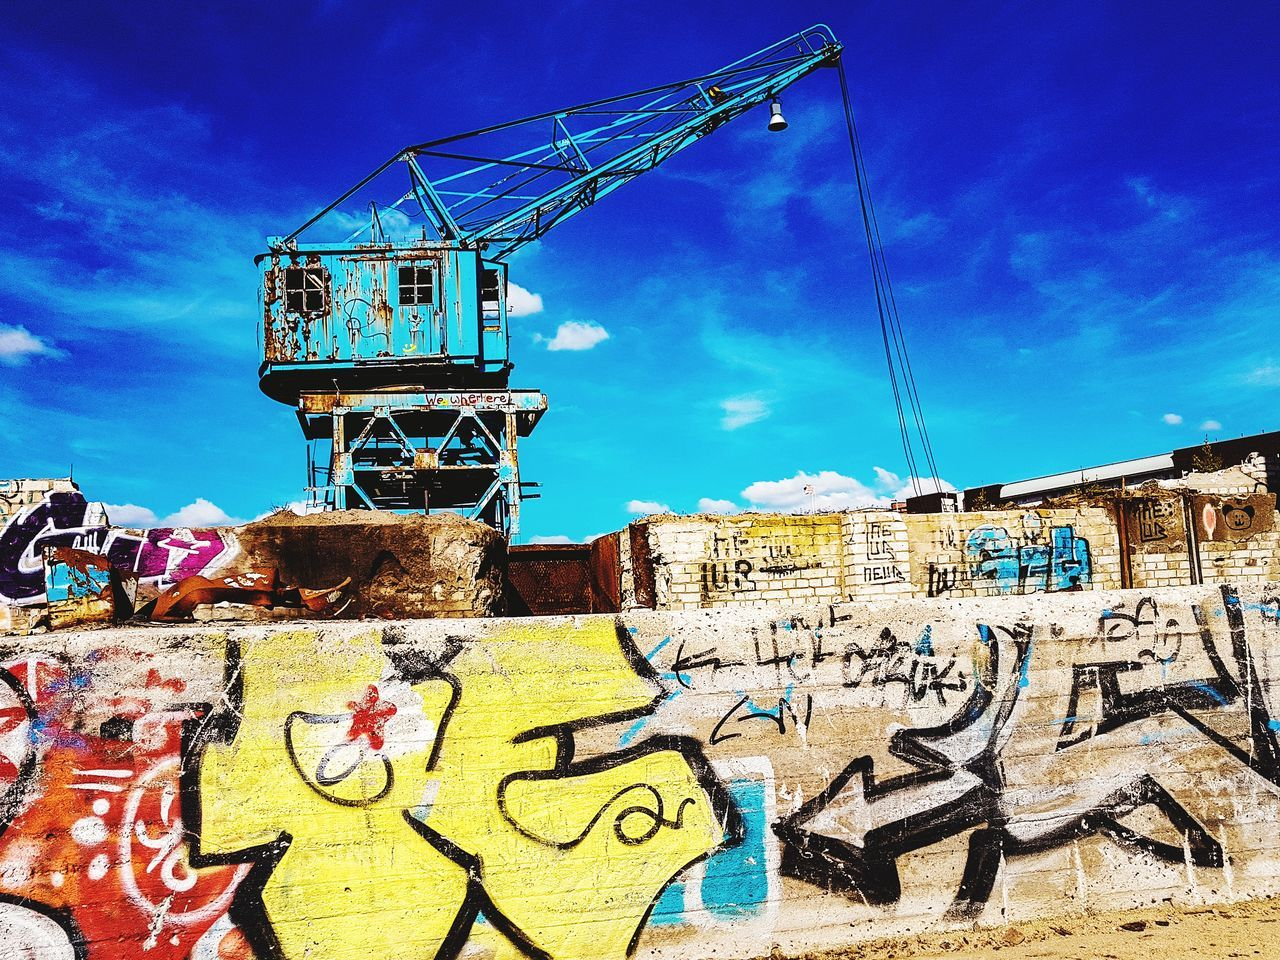 graffiti, cloud - sky, sky, art and craft, architecture, built structure, outdoors, day, building exterior, communication, sunlight, blue, low angle view, no people